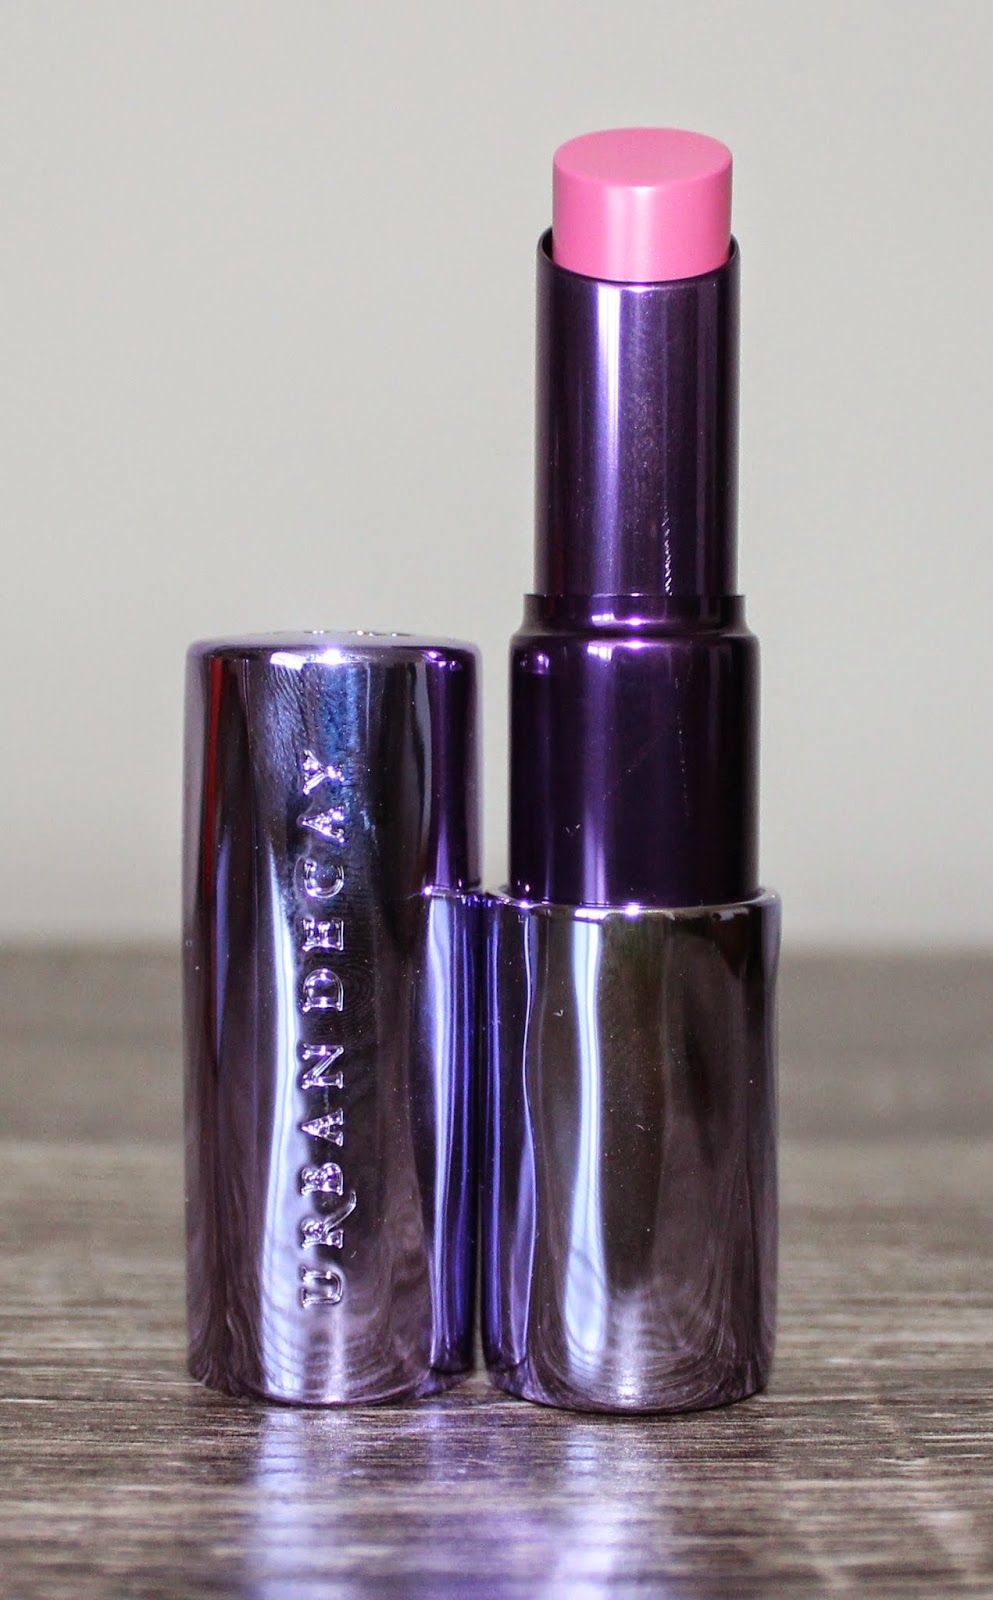 Urban Decay Sheer Revolution Lipstick in Sheer Obsessed